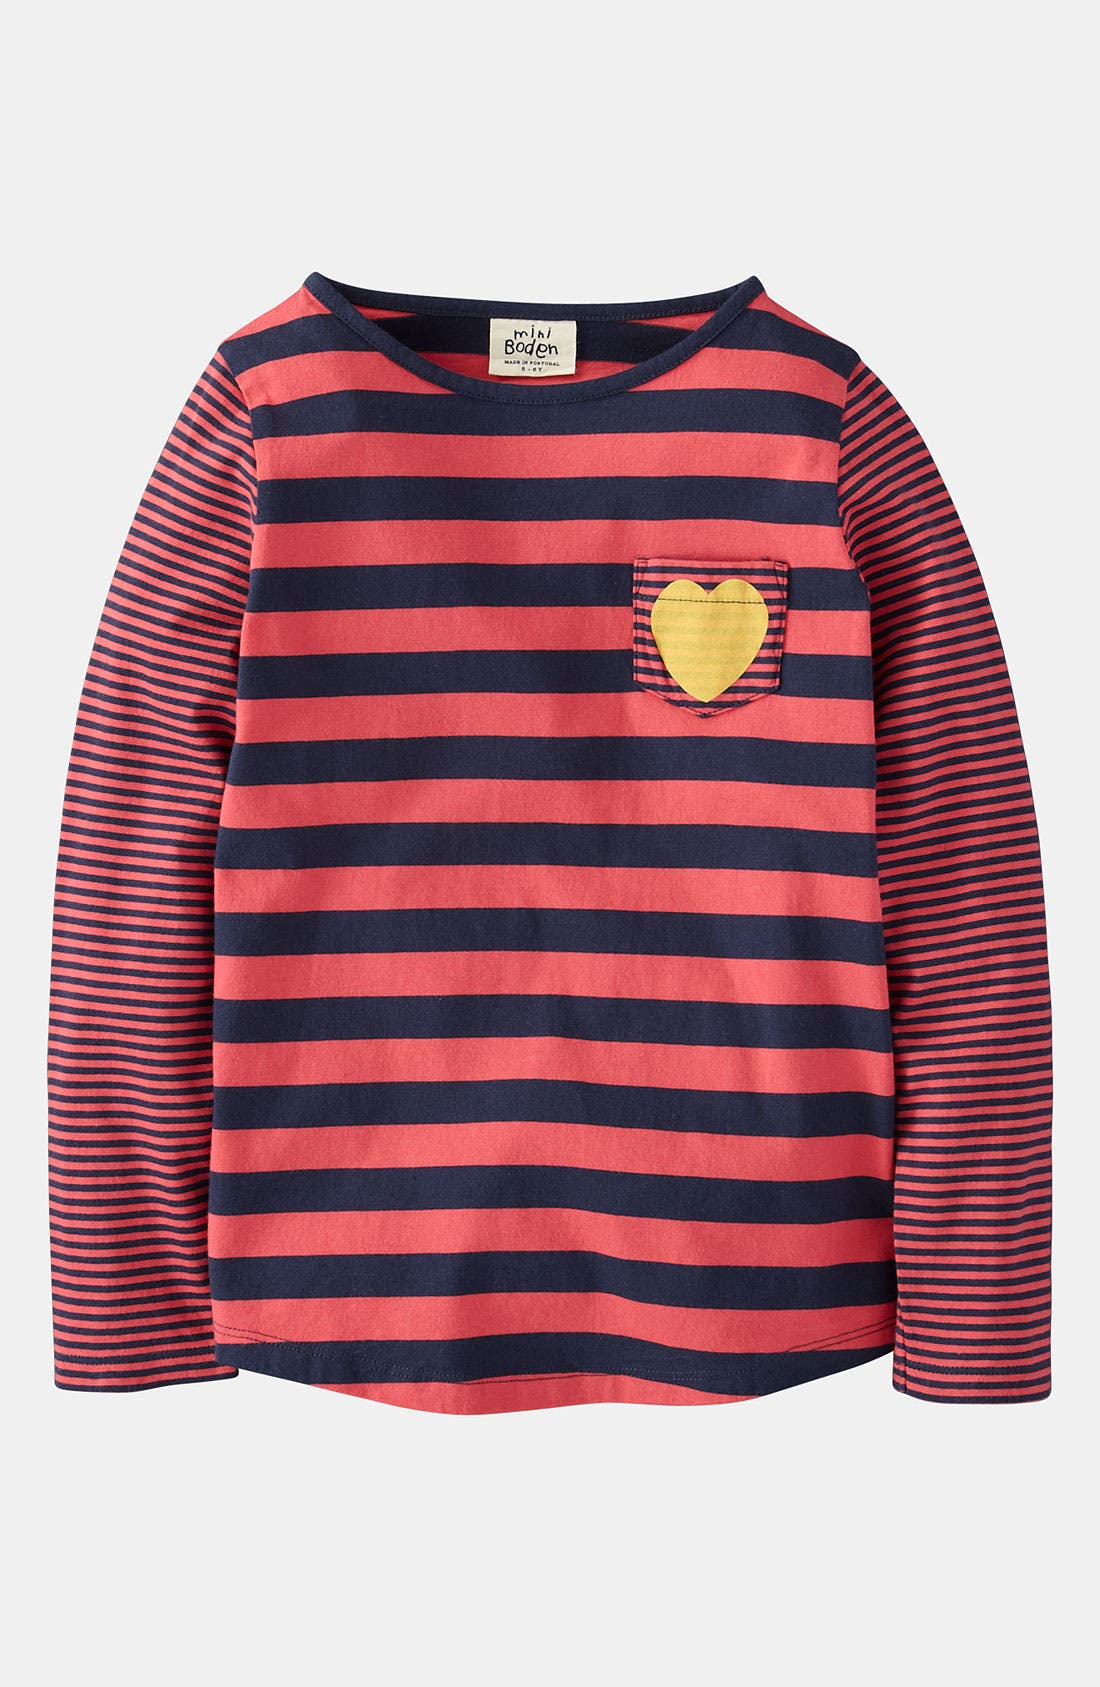 Alternate Image 1 Selected - Mini Boden 'Stripy Hotchpotch' Tee (Toddler)